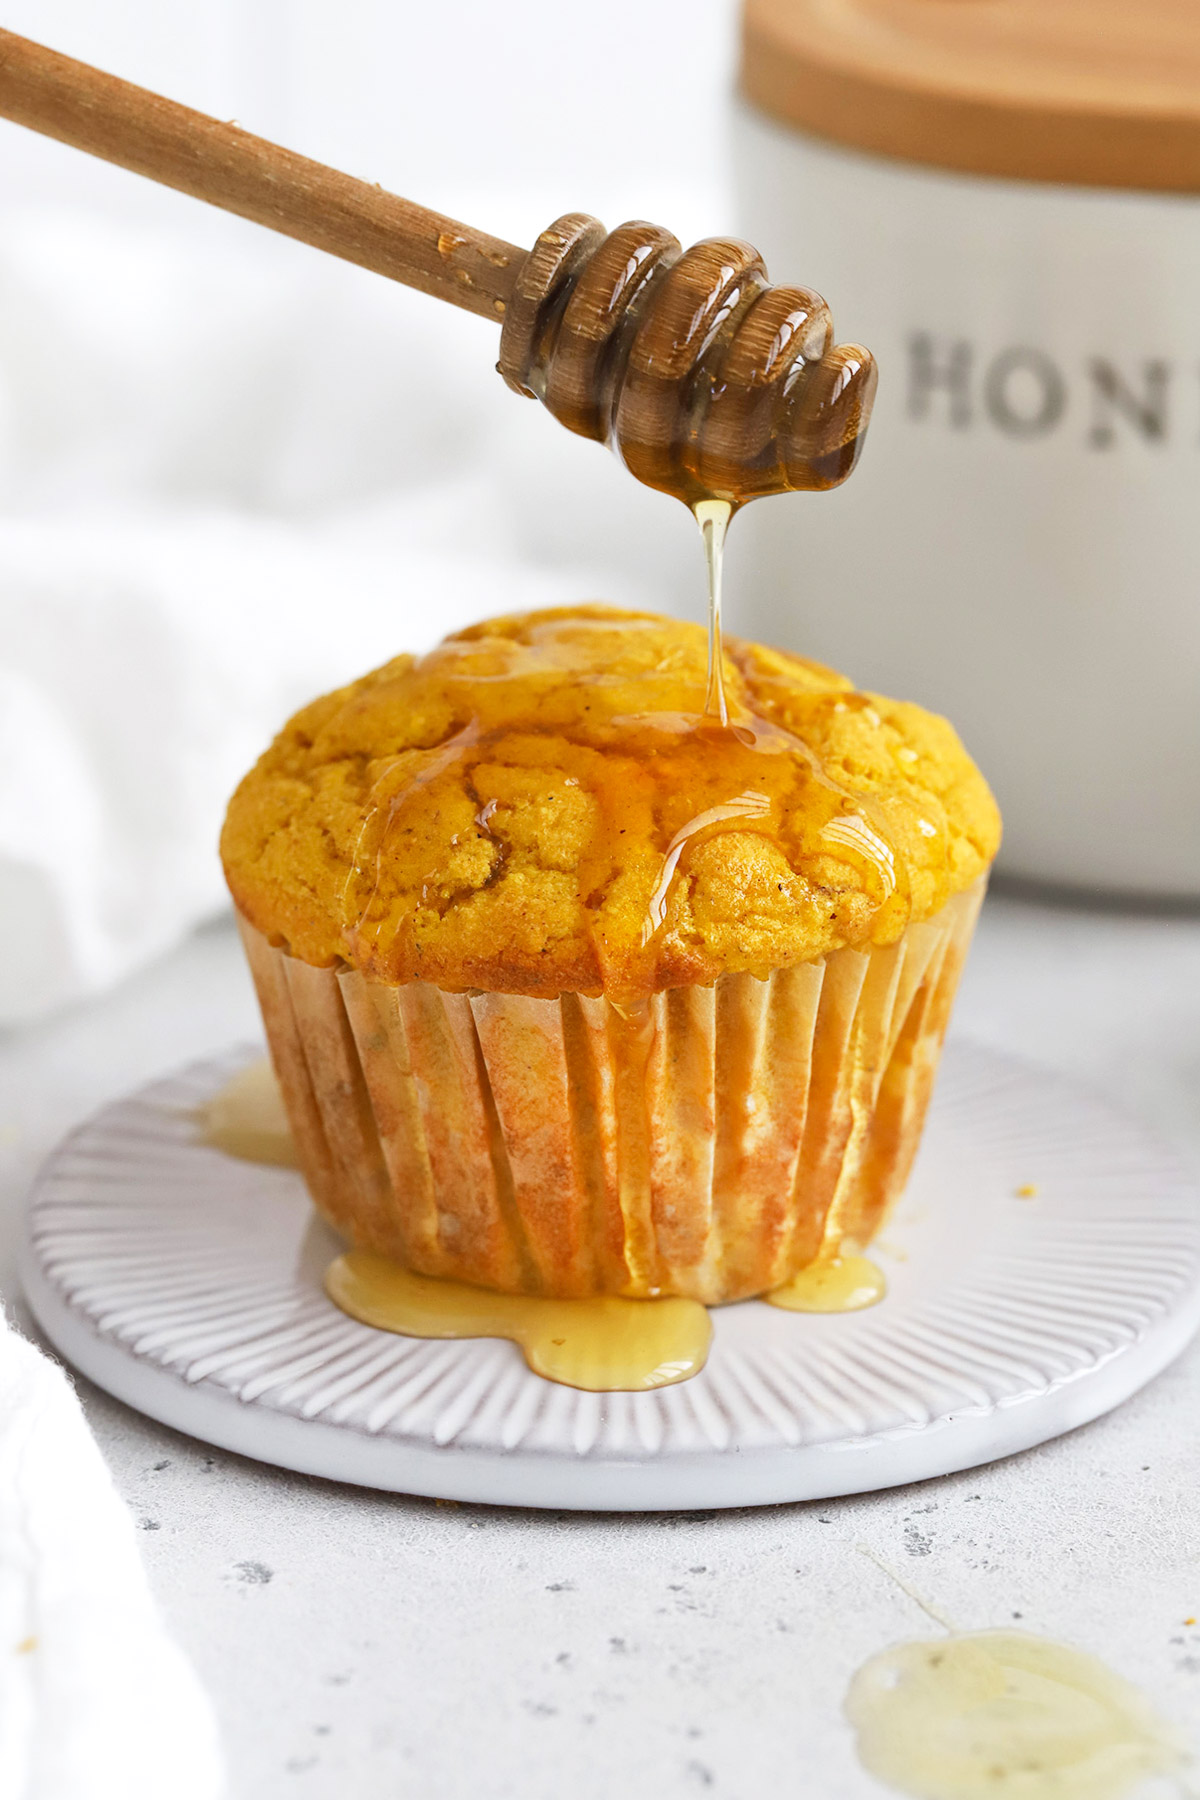 Gluten-Free cornbread muffin being drizzled with honey